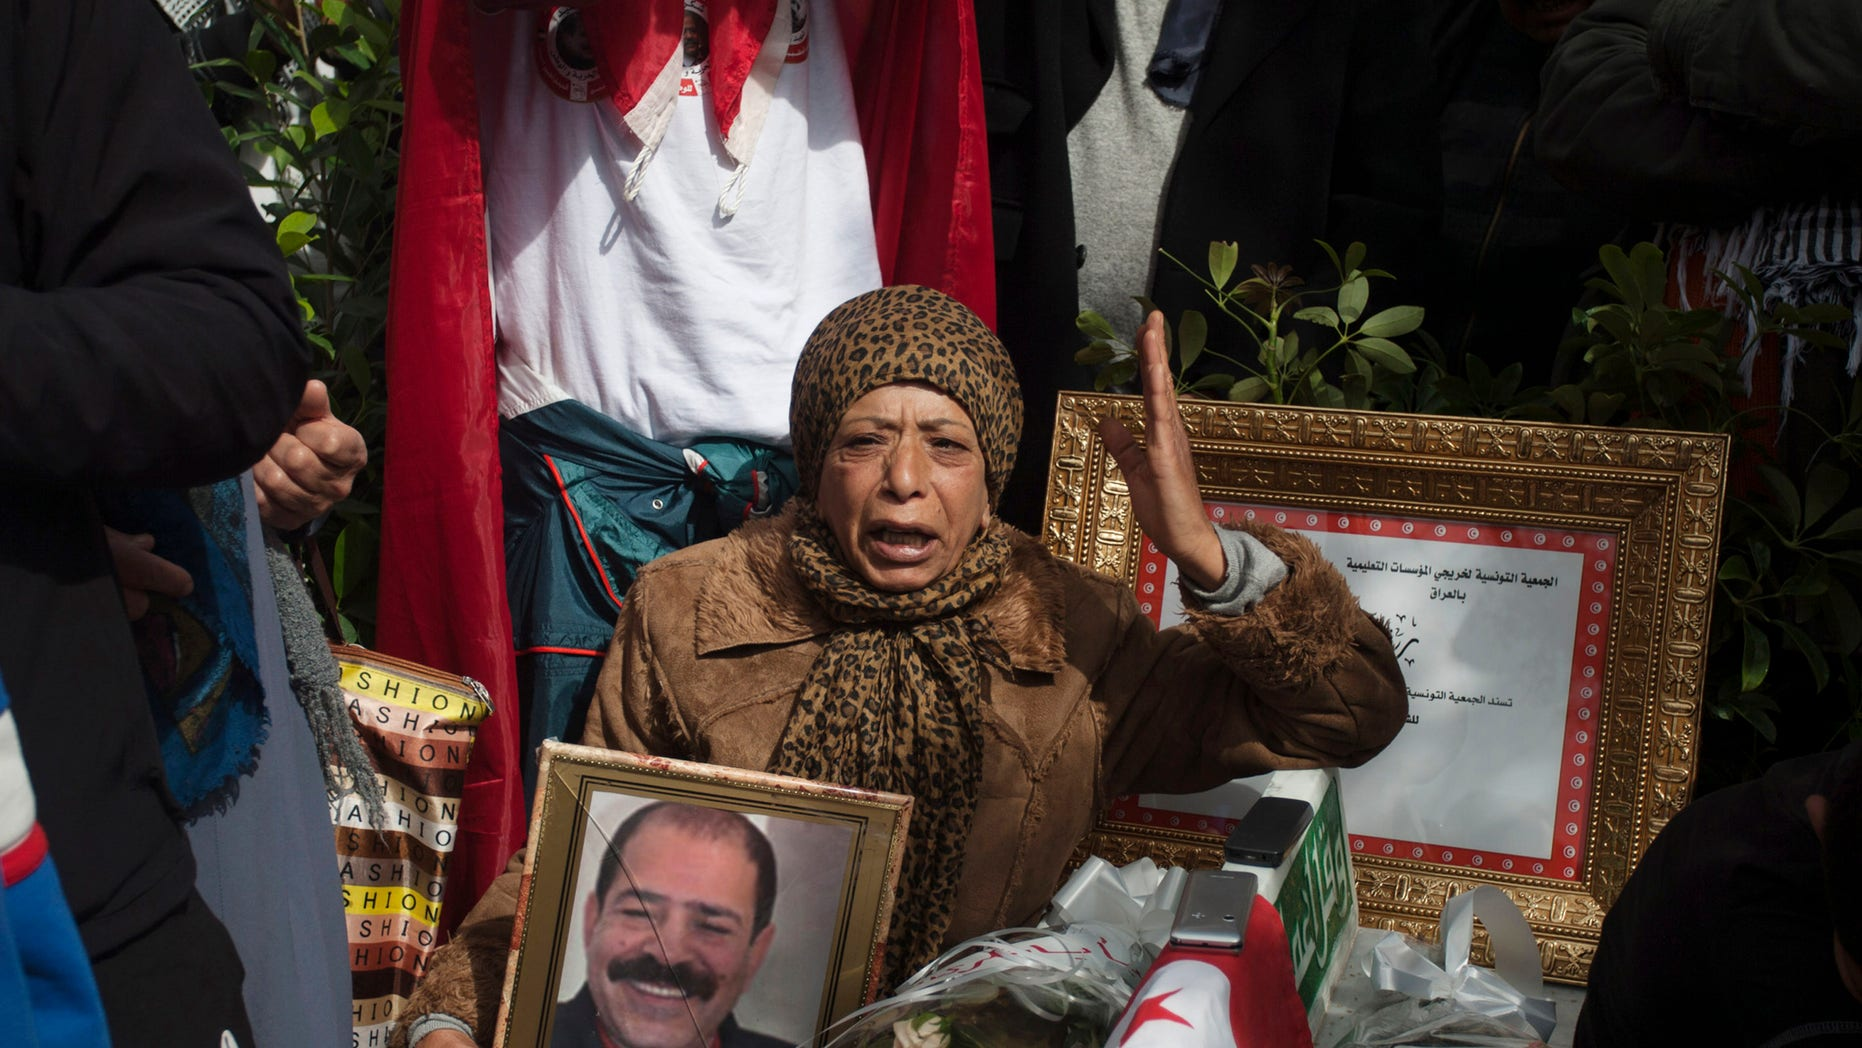 A protestor holds a portrait of slain Tunisian opposition leader Chokri Belaid, during a demonstration to mark 40 days since his death, in Tunis, Saturday, March 16, 2013. (AP Photo/Amine Landoulsi)